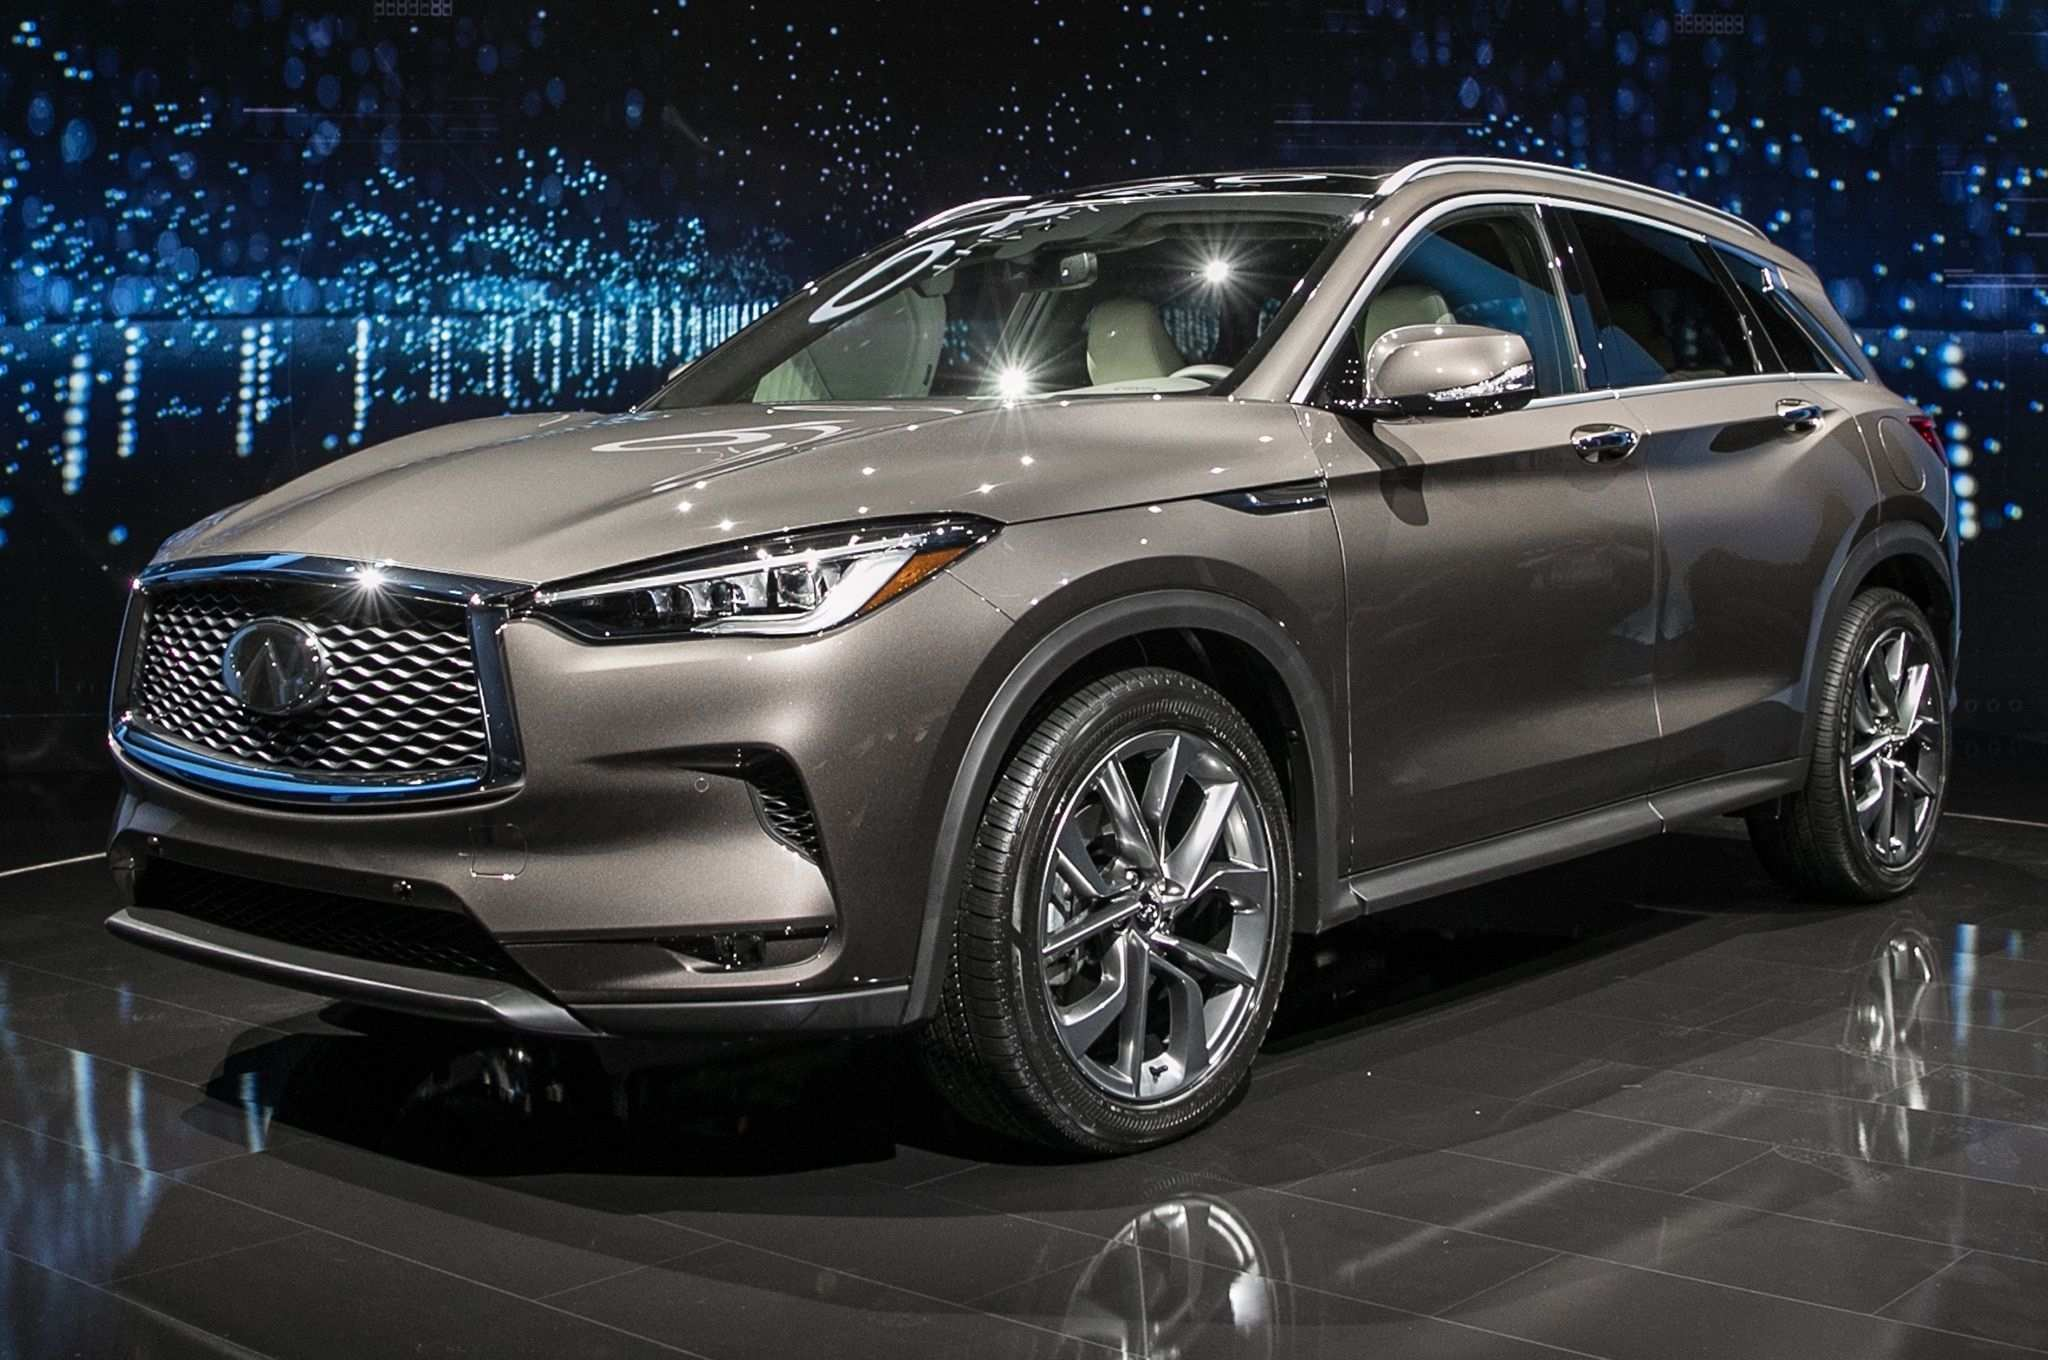 75 Concept of 2020 Infiniti Qx50 Luxe New Concept Prices for 2020 Infiniti Qx50 Luxe New Concept